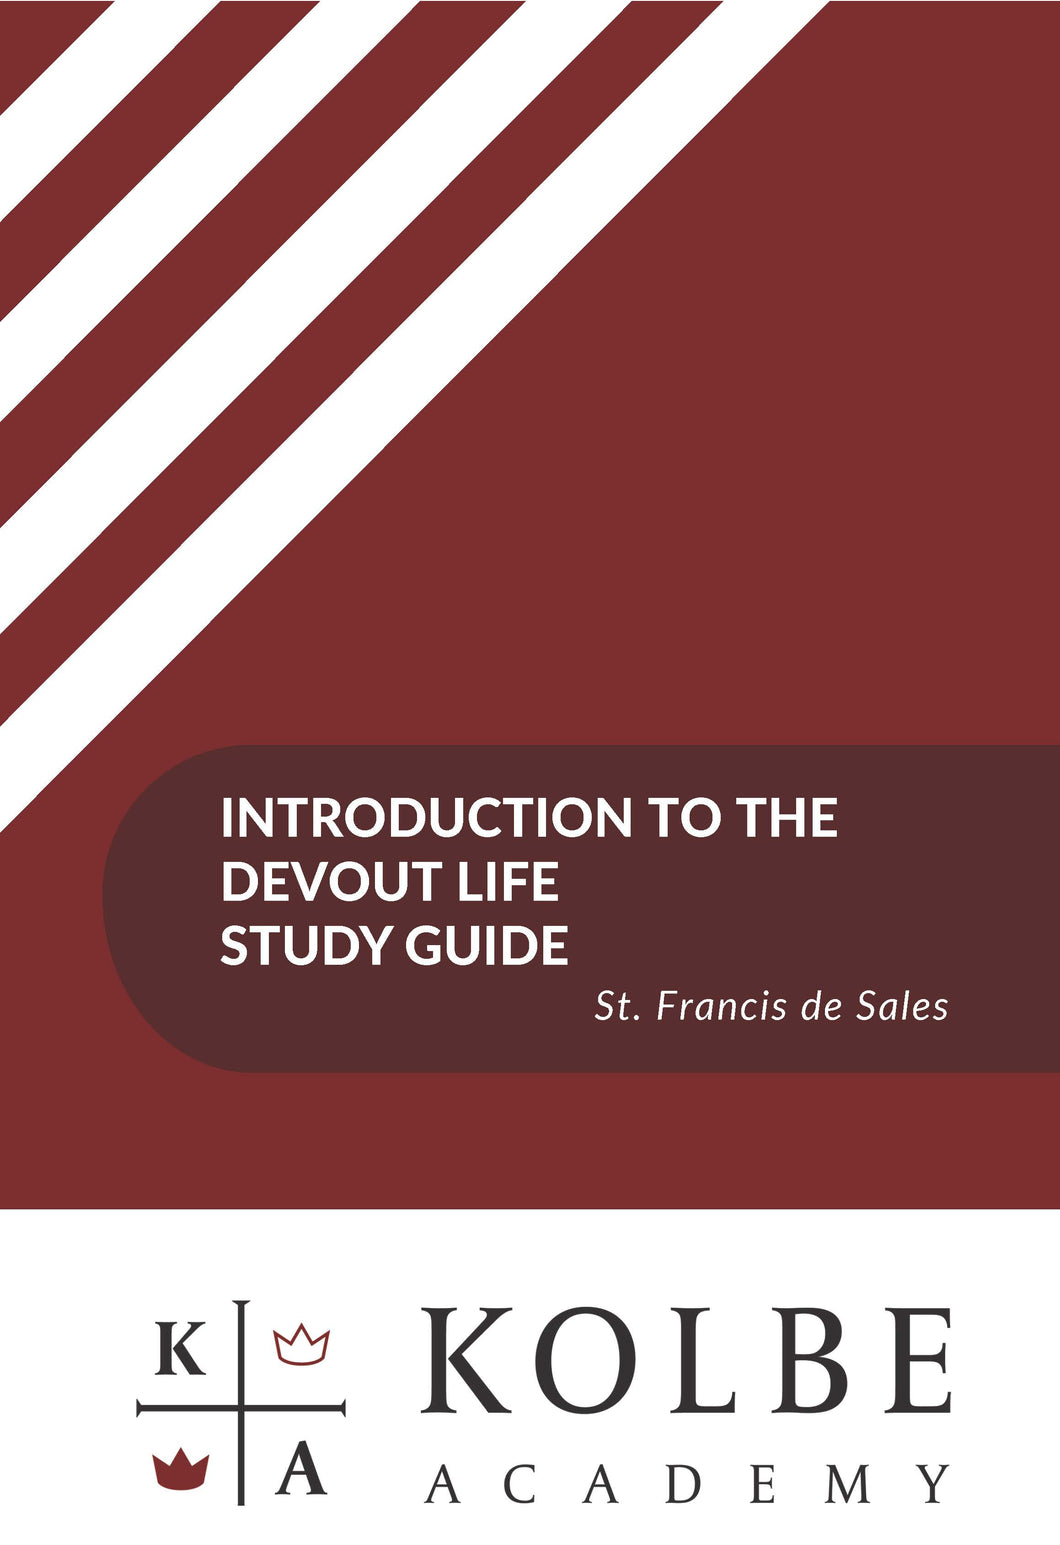 Introduction to the Devout Life Study Guides